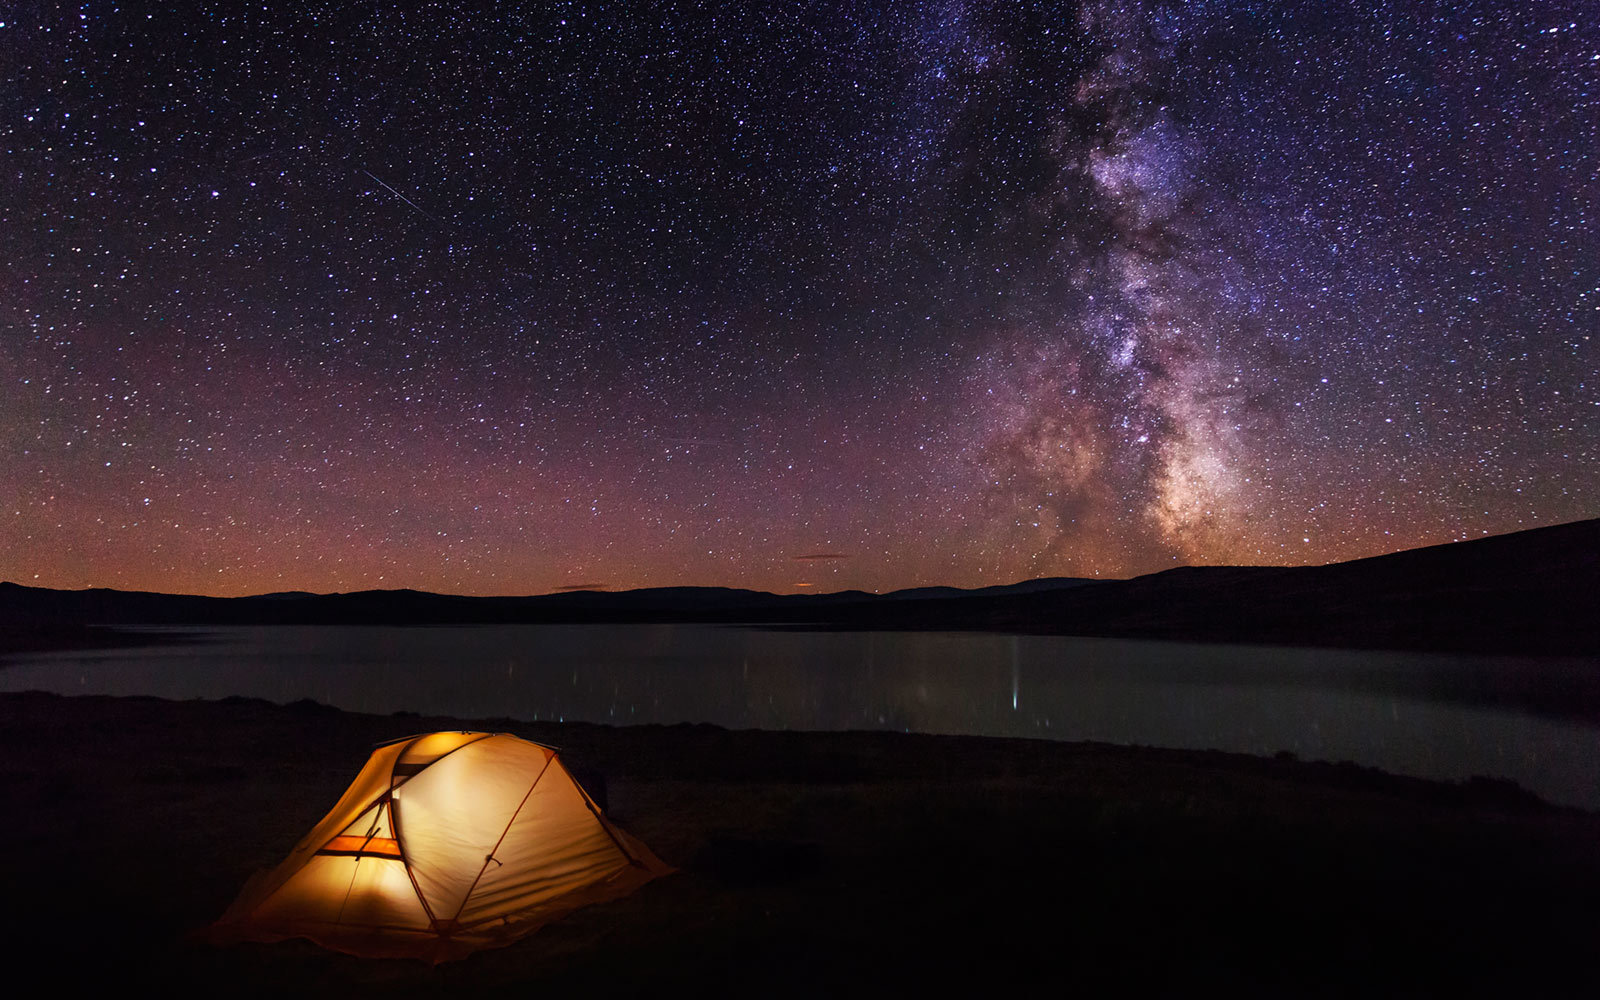 Tent, Camping, Mountains, Night